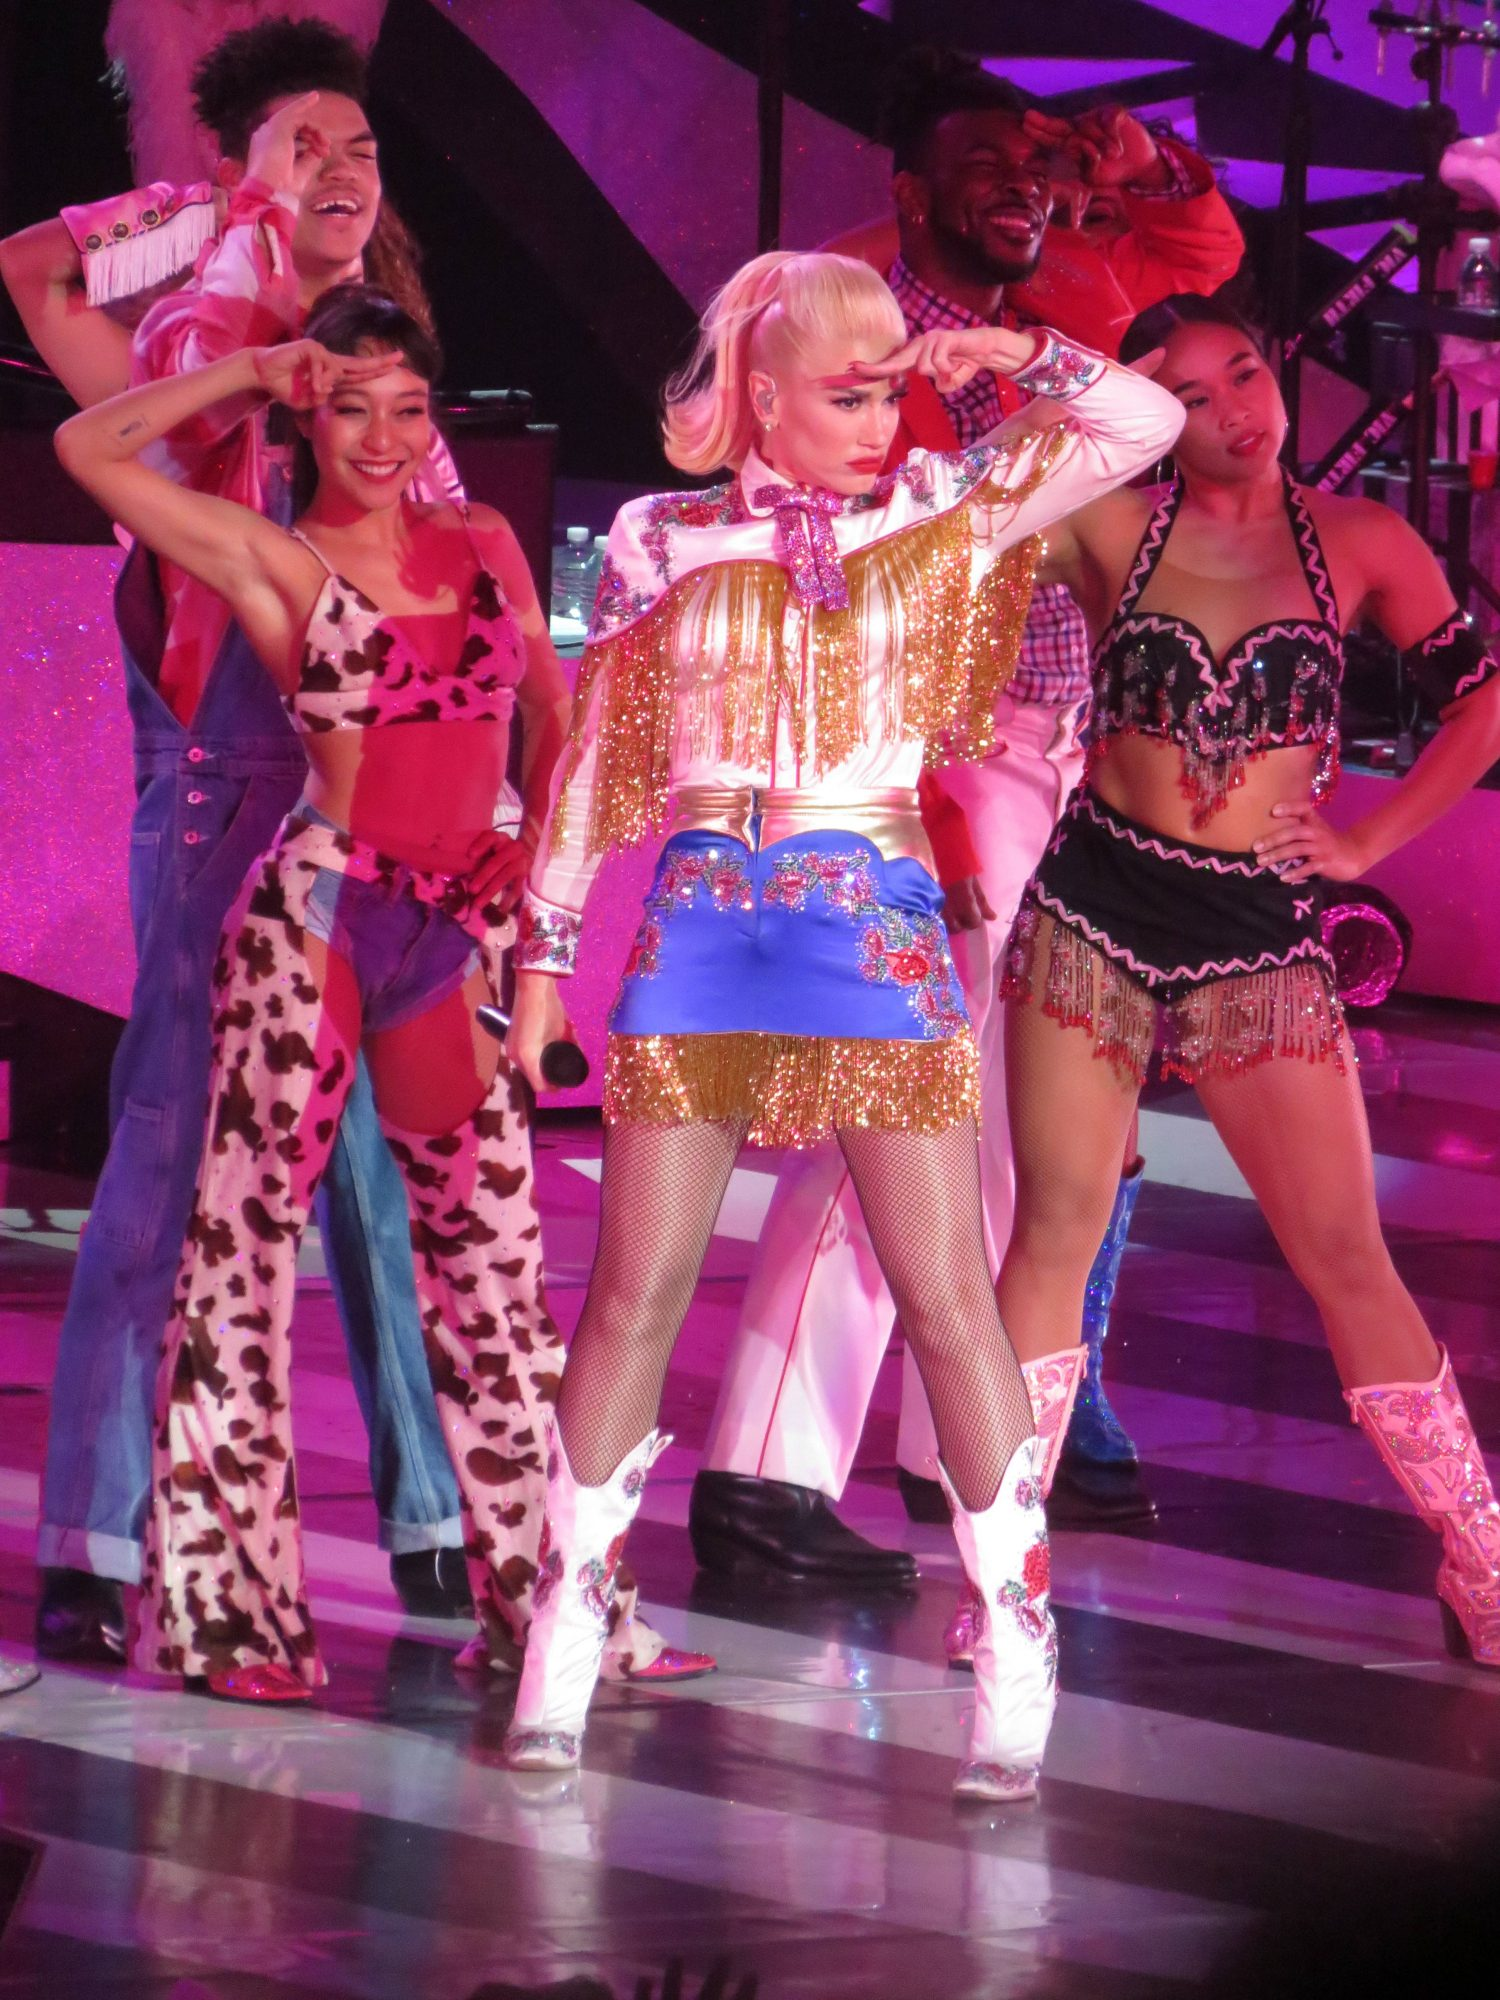 Gwen Stefani Dresses in Western Wear For Las Vegas Concert